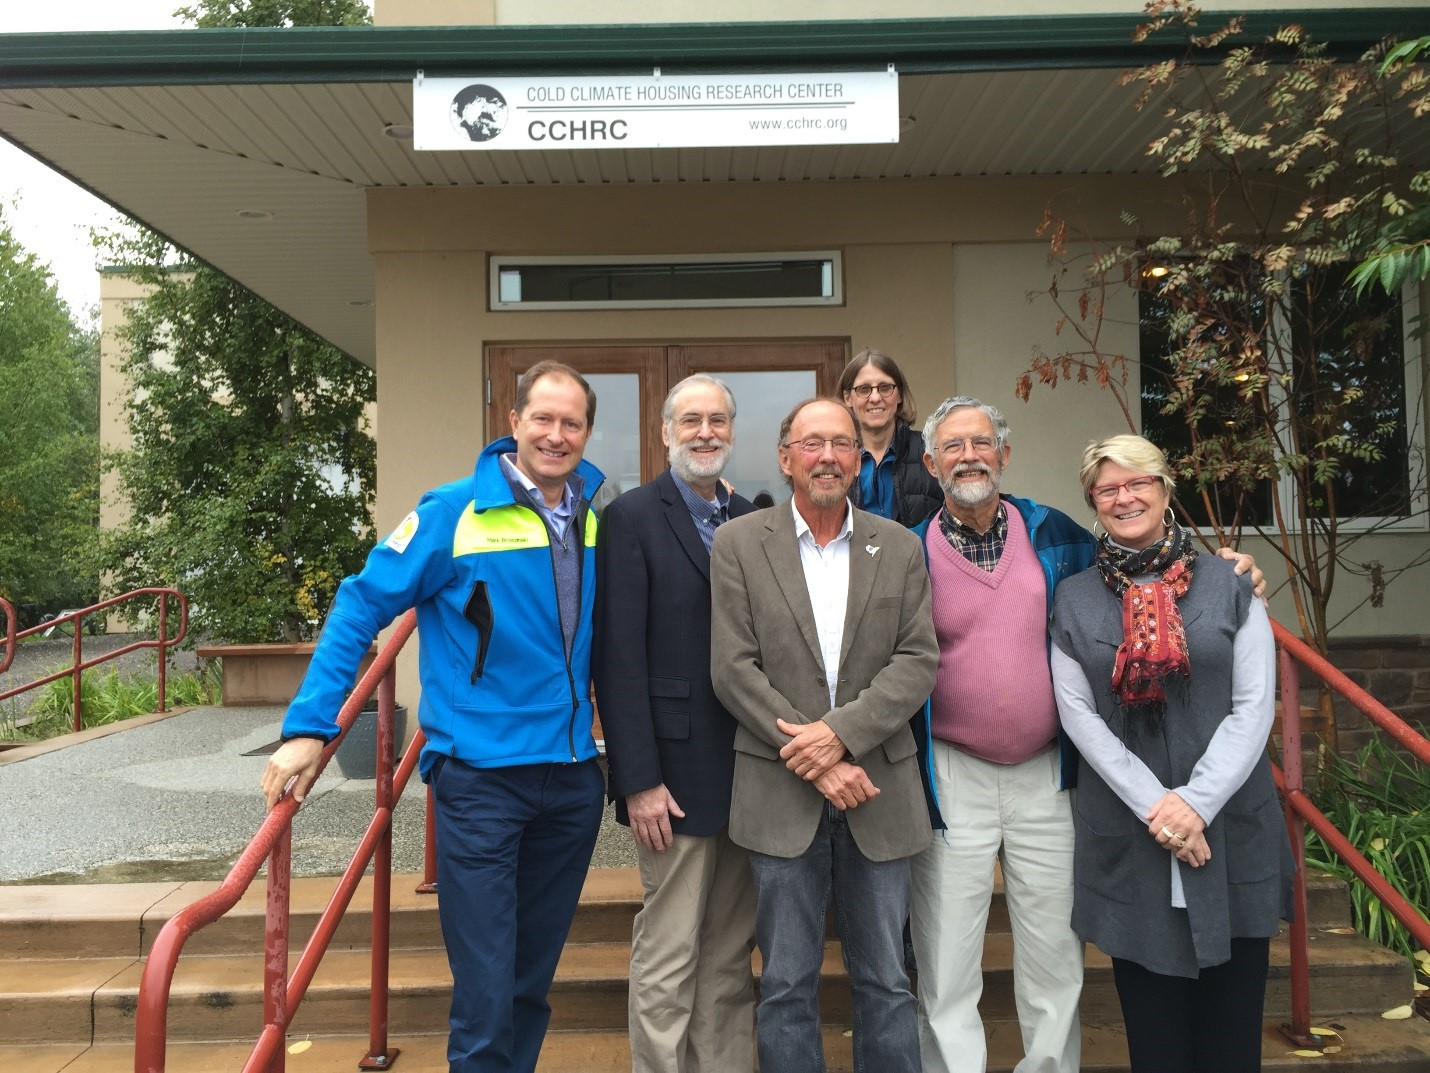 Senior OSTP officials at the Cold Climate Housing Research Center